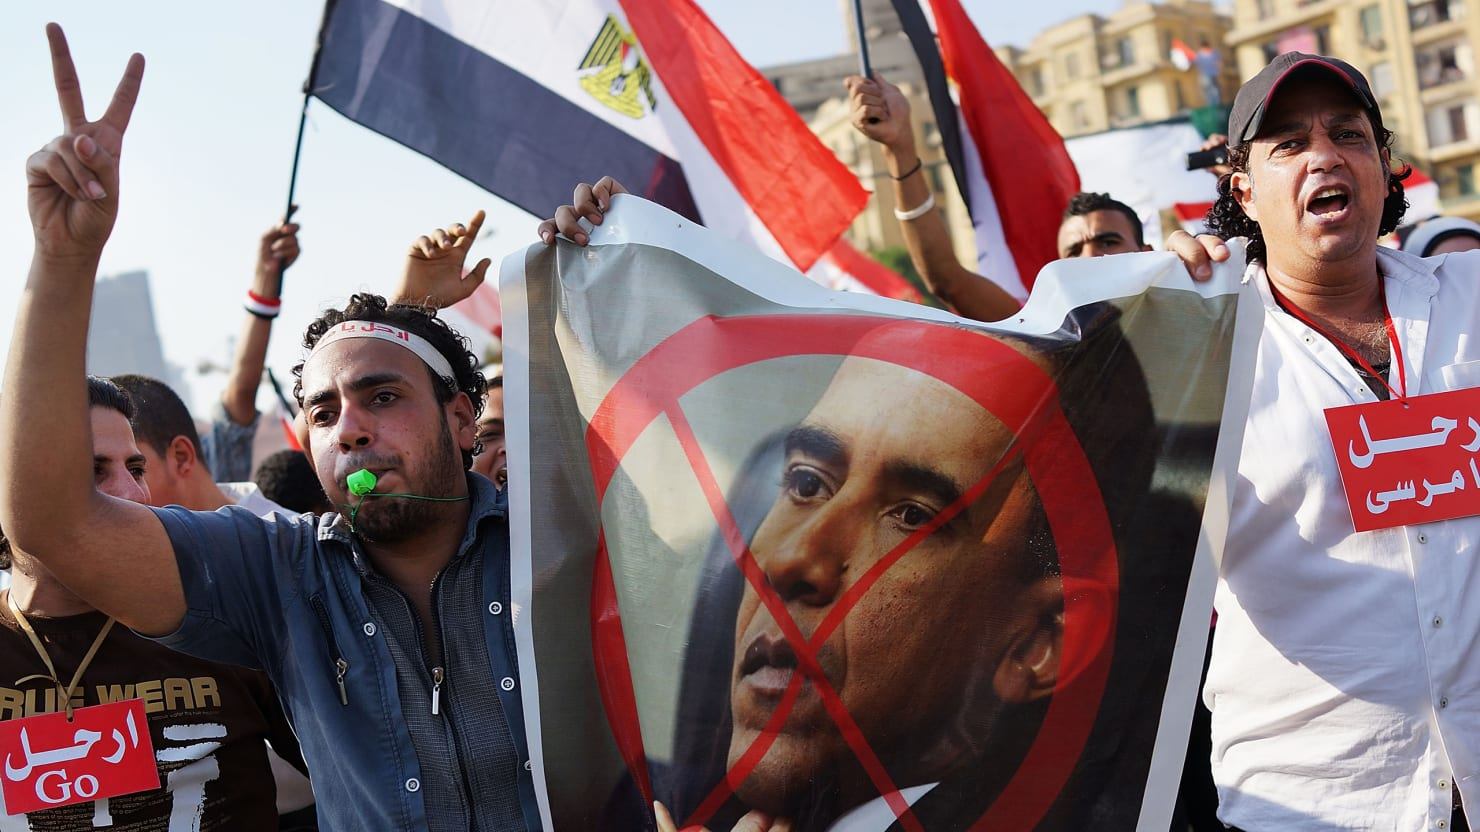 How Obama Lost His Influence in Egypt